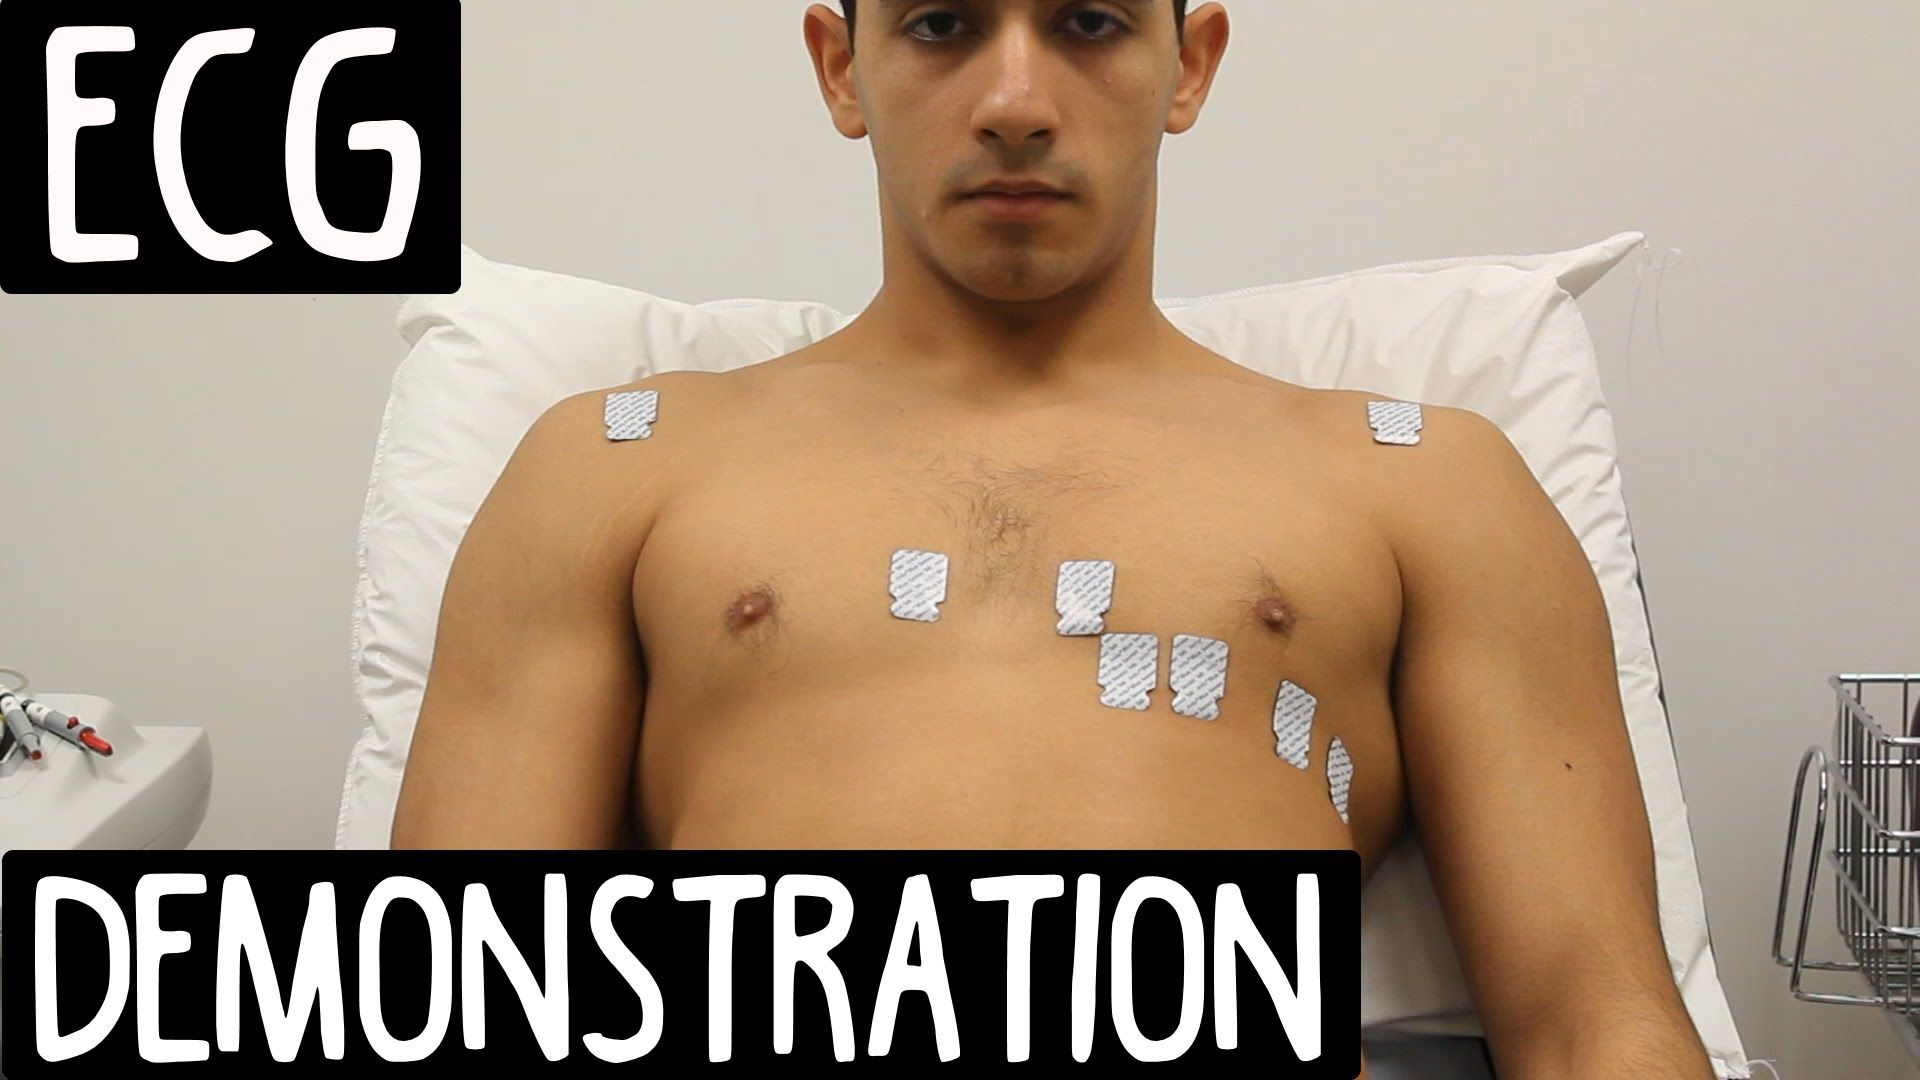 ECG Lead Placement OSCE Exam Demonstration Certified